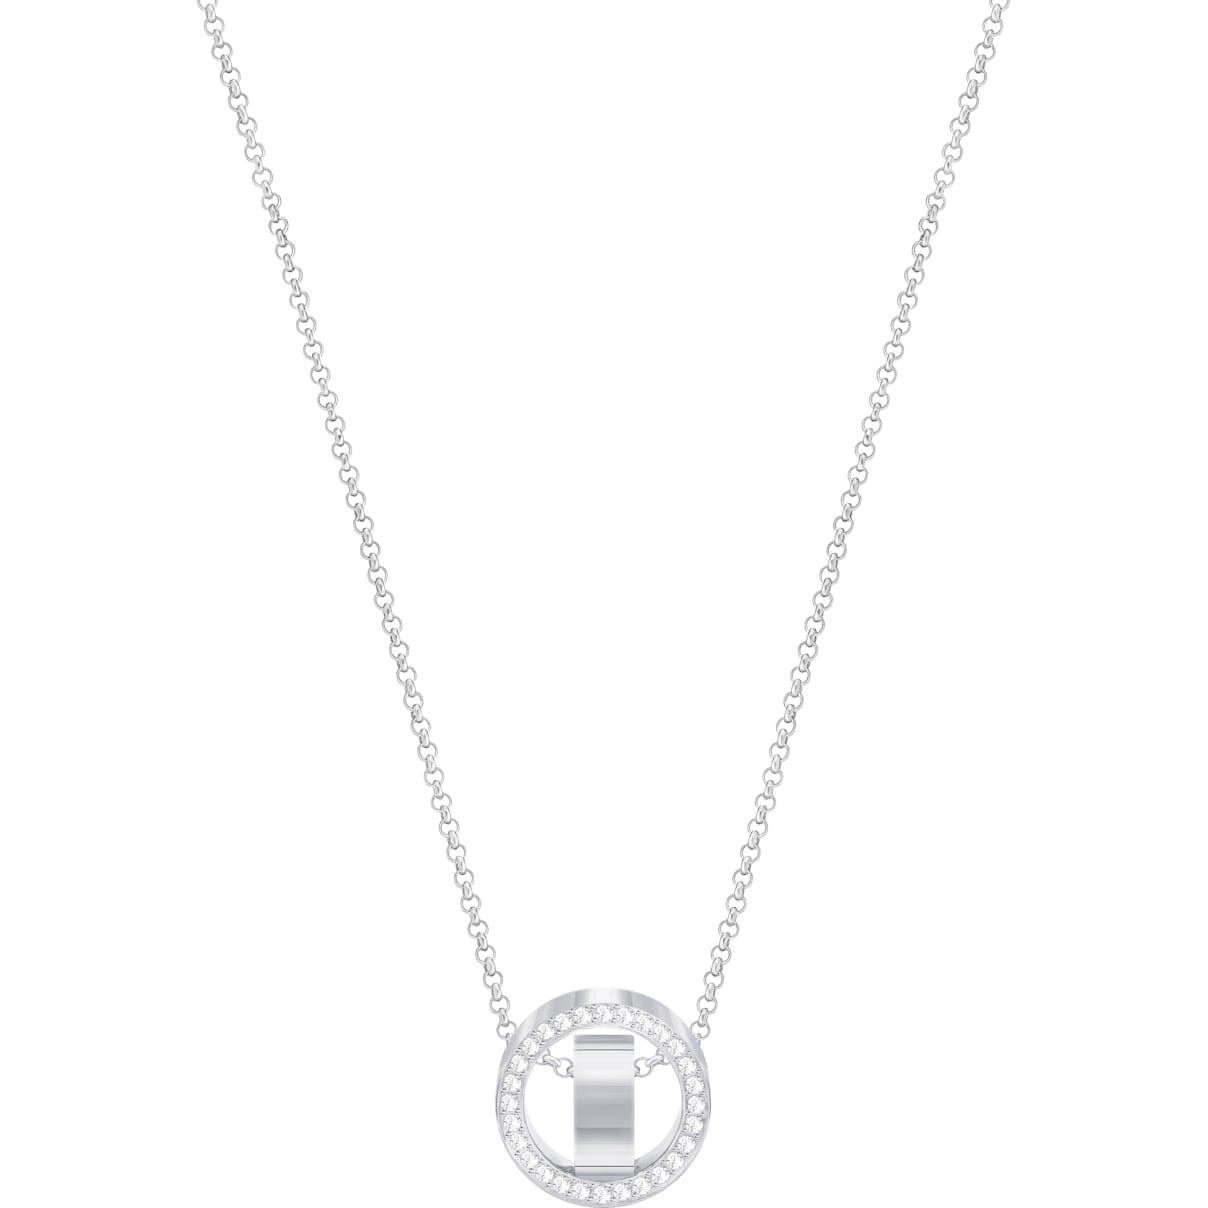 Swarovski Hollow Pendant, White, Rhodium plated